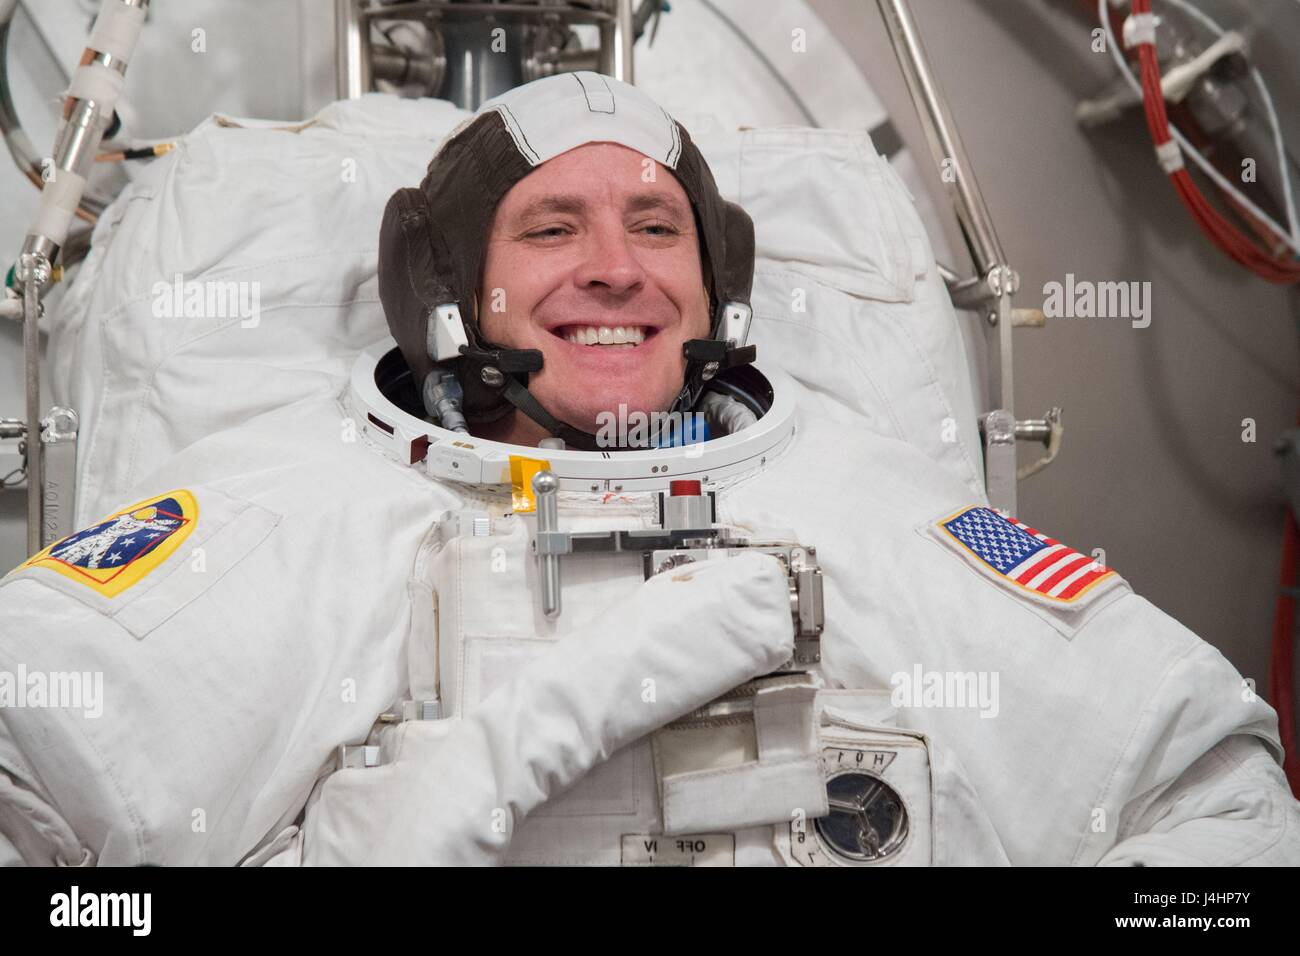 NASA International Space Station Expedition 52/53 prime crew member American astronaut Jack Fischer in a spacesuit Stock Photo